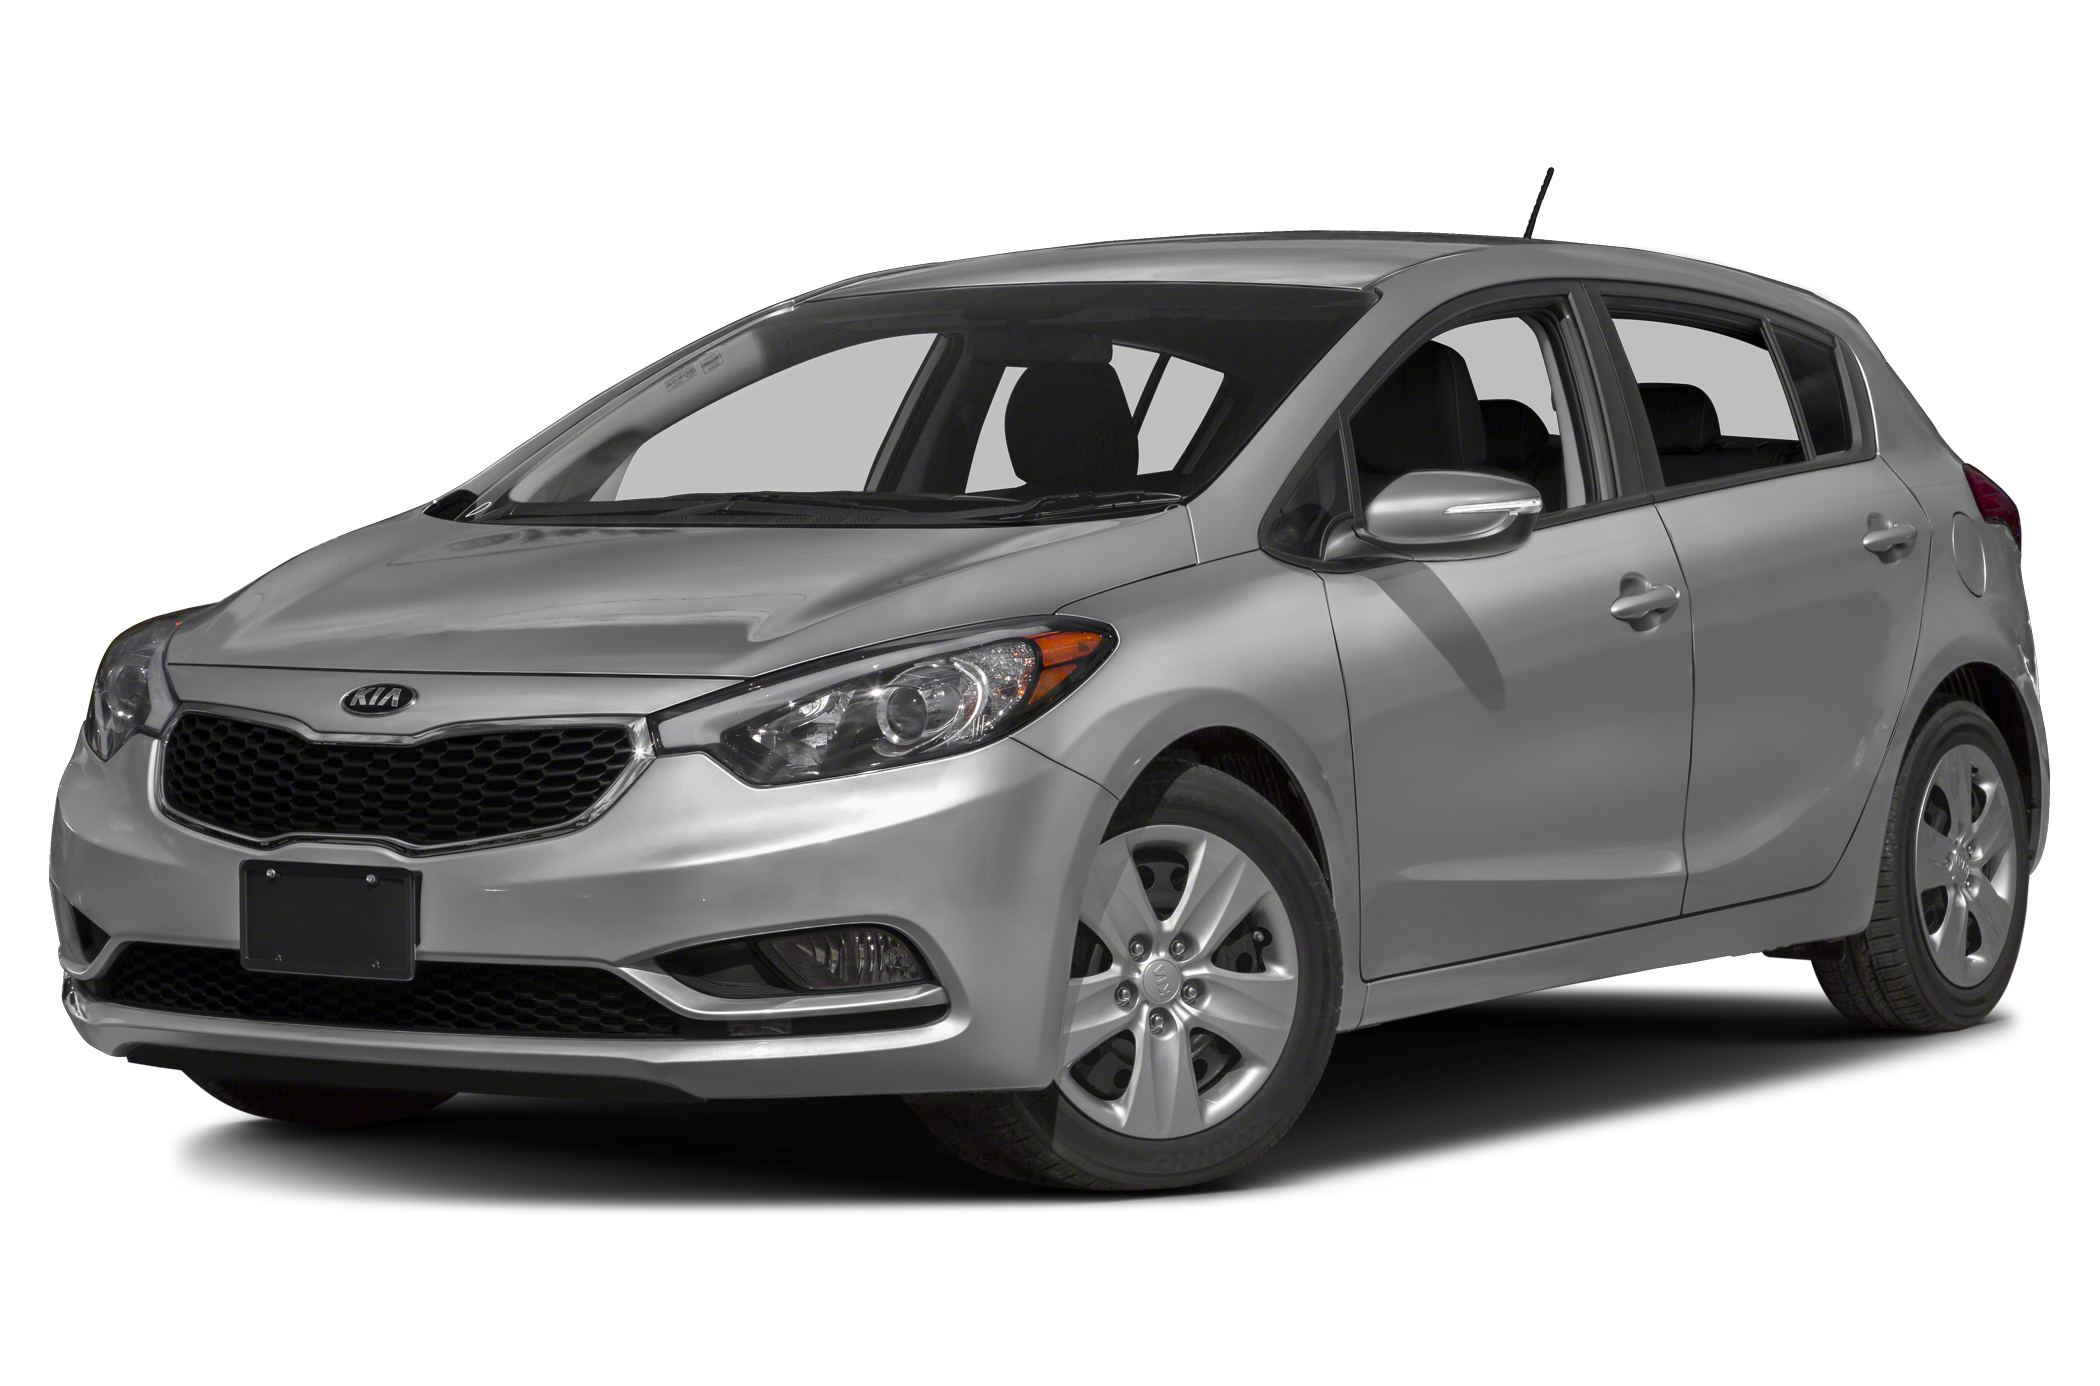 2016 Forte 5